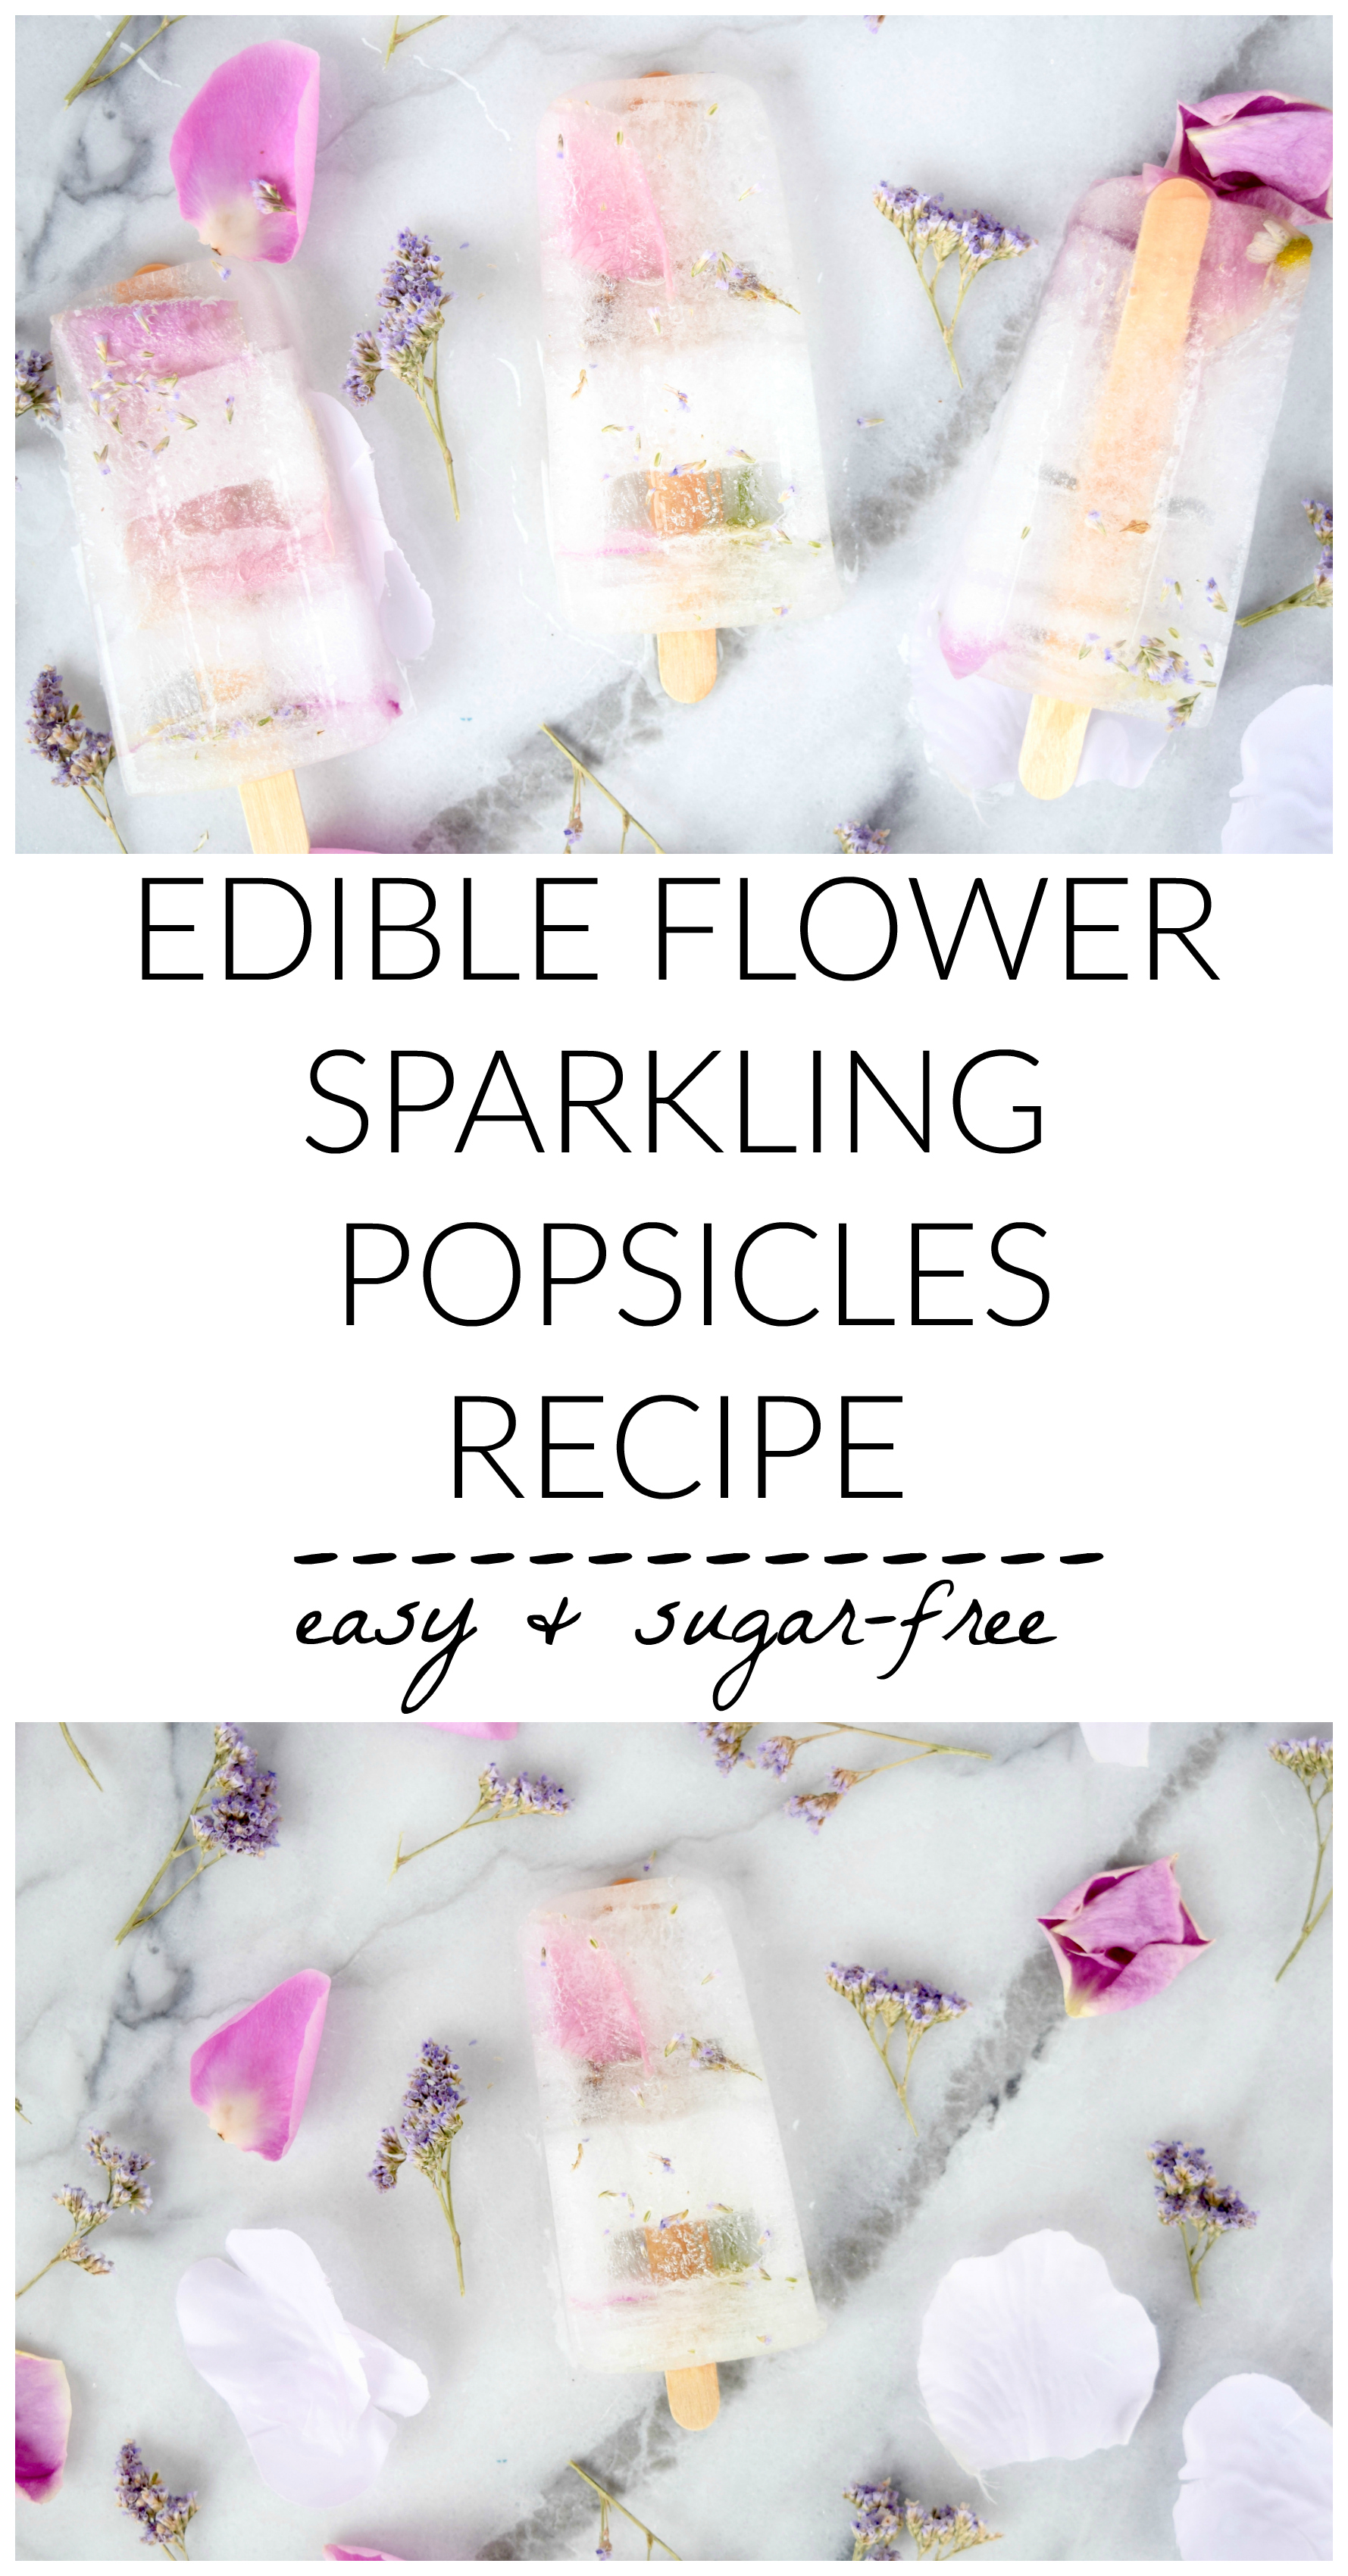 EDIBLE FLOWER SPARKLING POPSICLES RECIPE